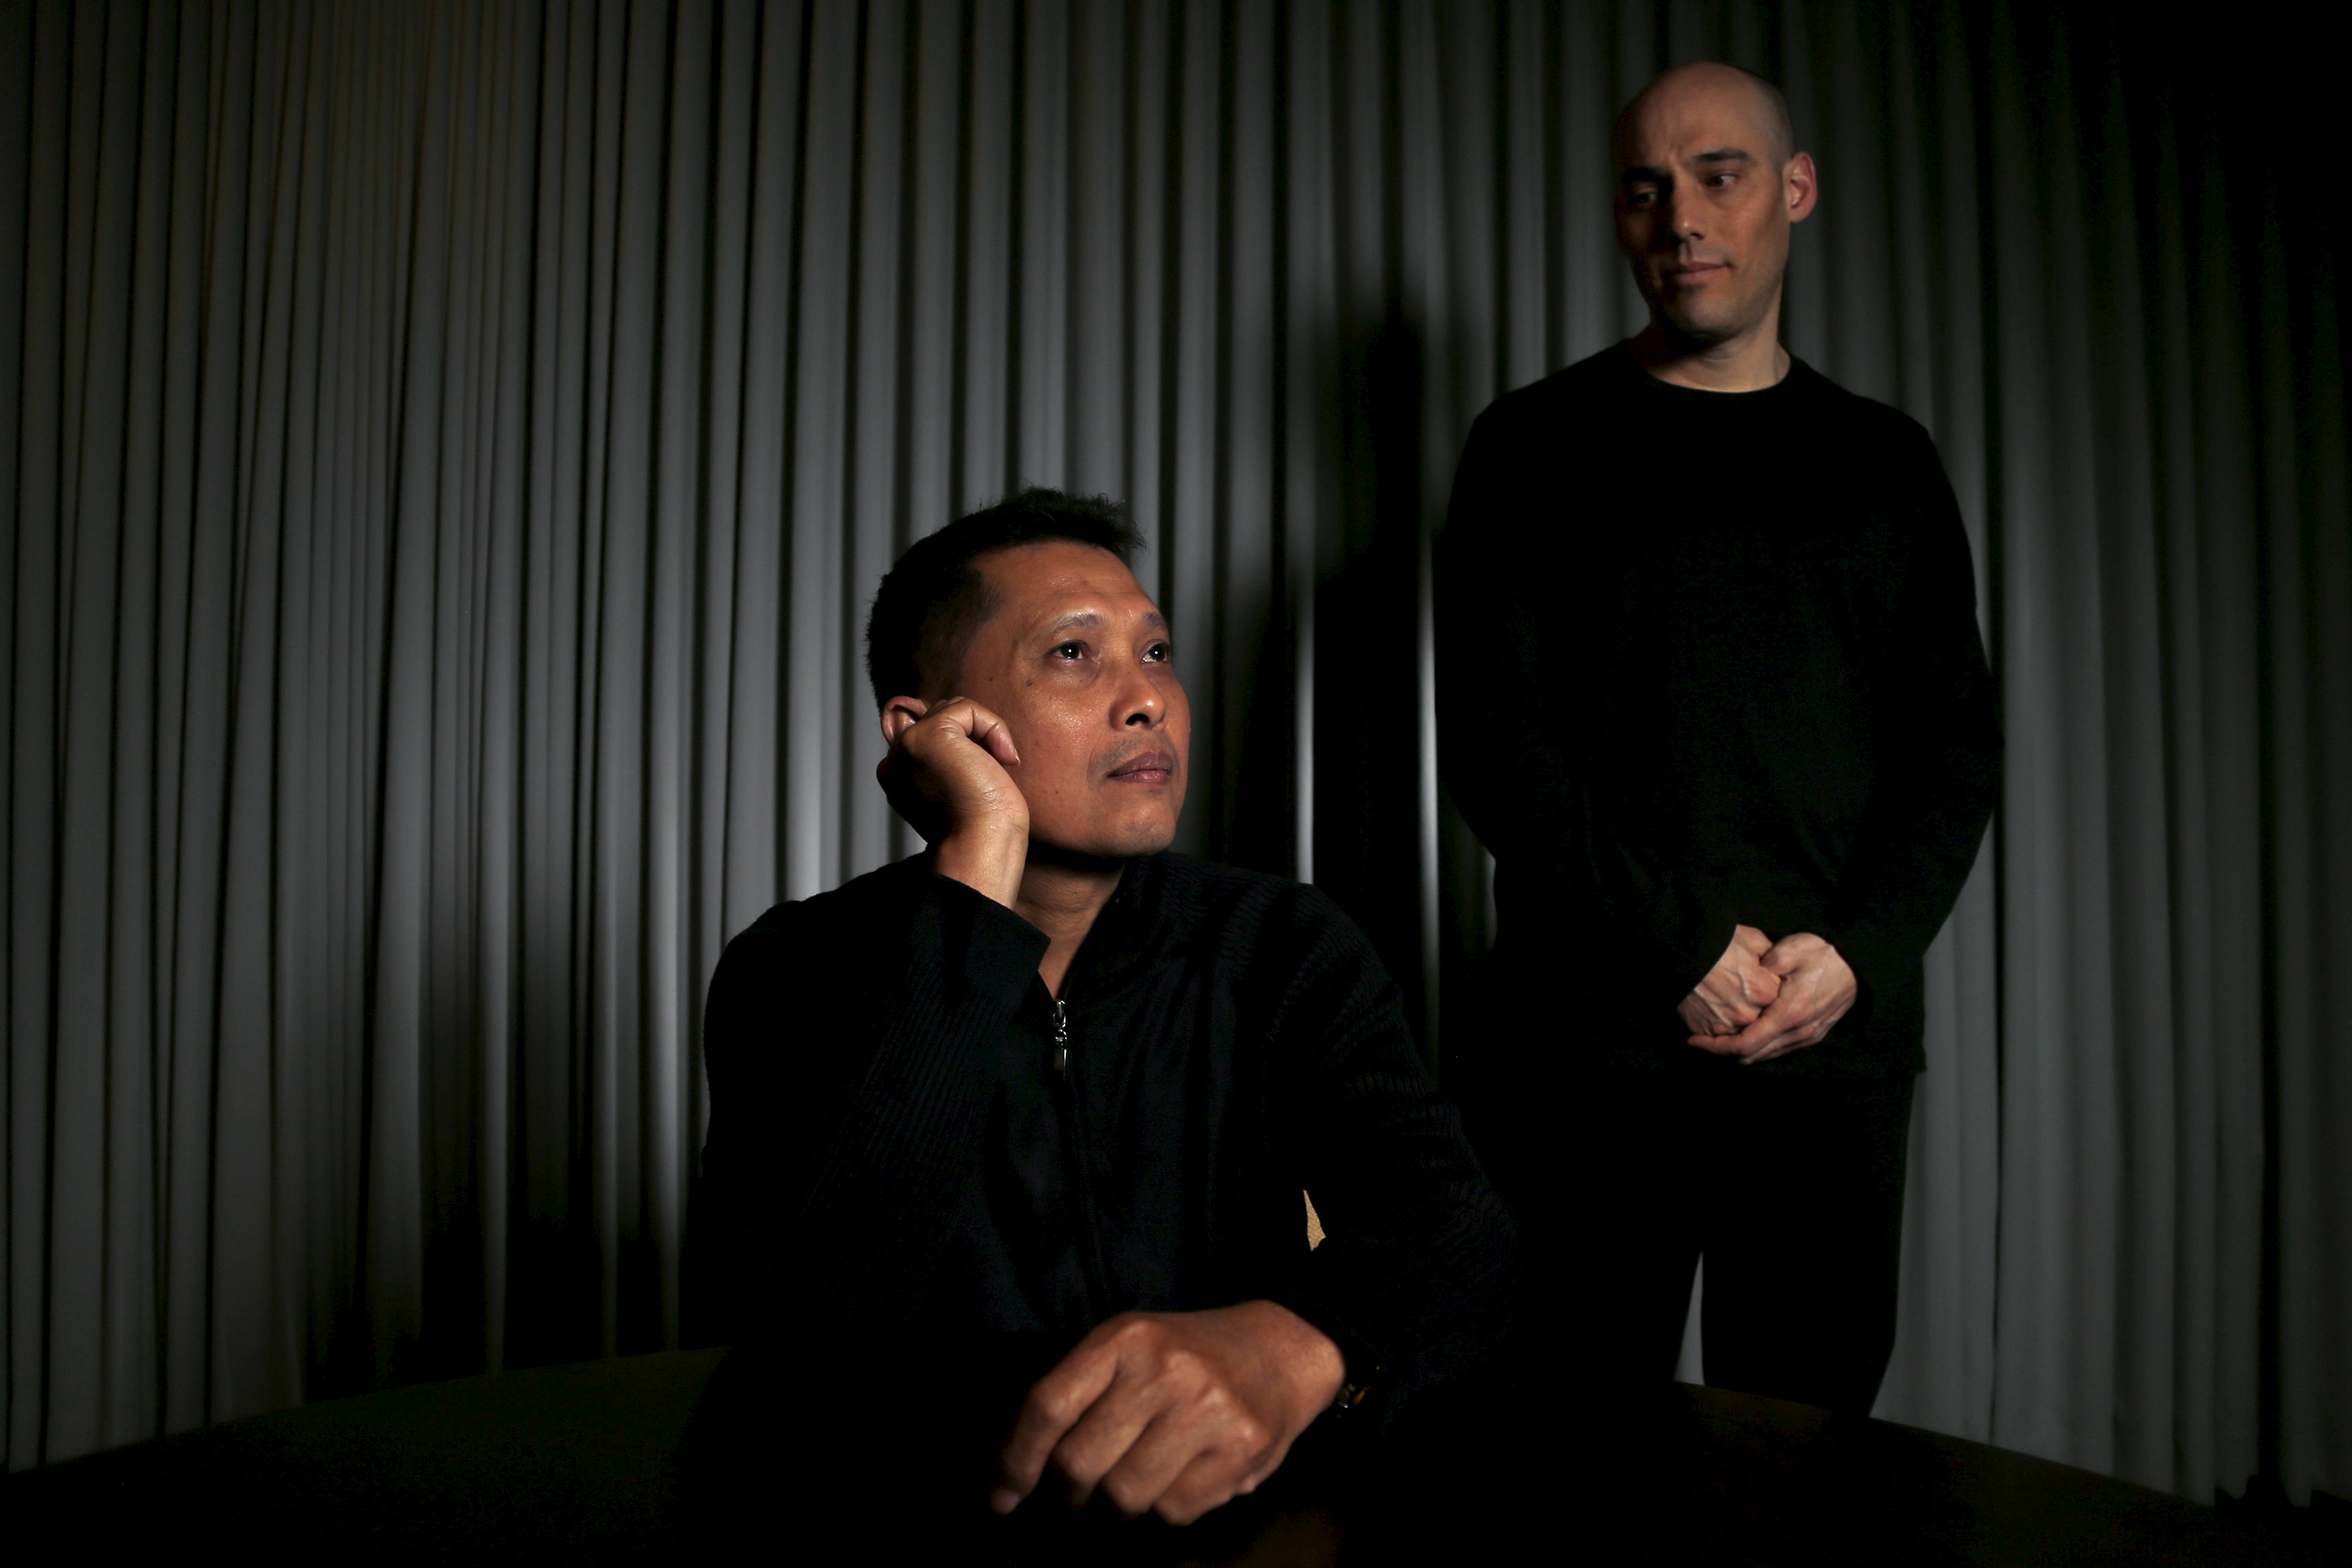 Joshua Oppenheimer, right, director of the documentary The Look of Silence, and Adi Rukun, whose brother Ramli Rukun was killed during the violence described in the documentary, pose for a portrait in Beverly Hills, Calif., on Feb. 9, 2016. Shot in Indonesia and nominated for an Oscar, the documentary is at once a source of national pride and of shame for the world's third largest democracy